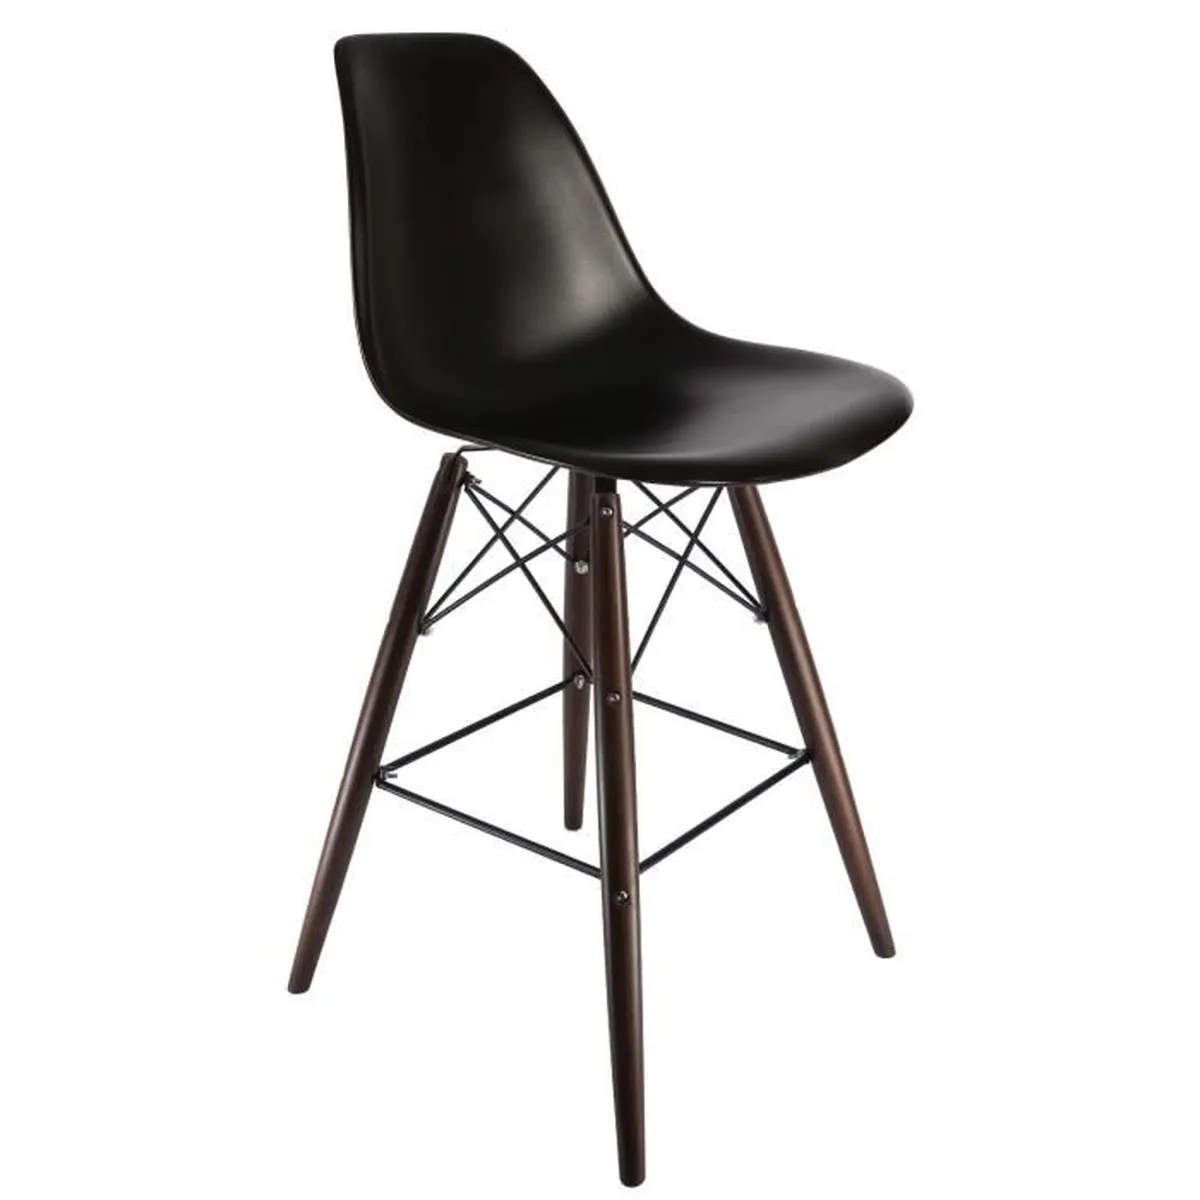 Chaises Privee Chaise Privee Tabouret Dsw Noir Noyer Base